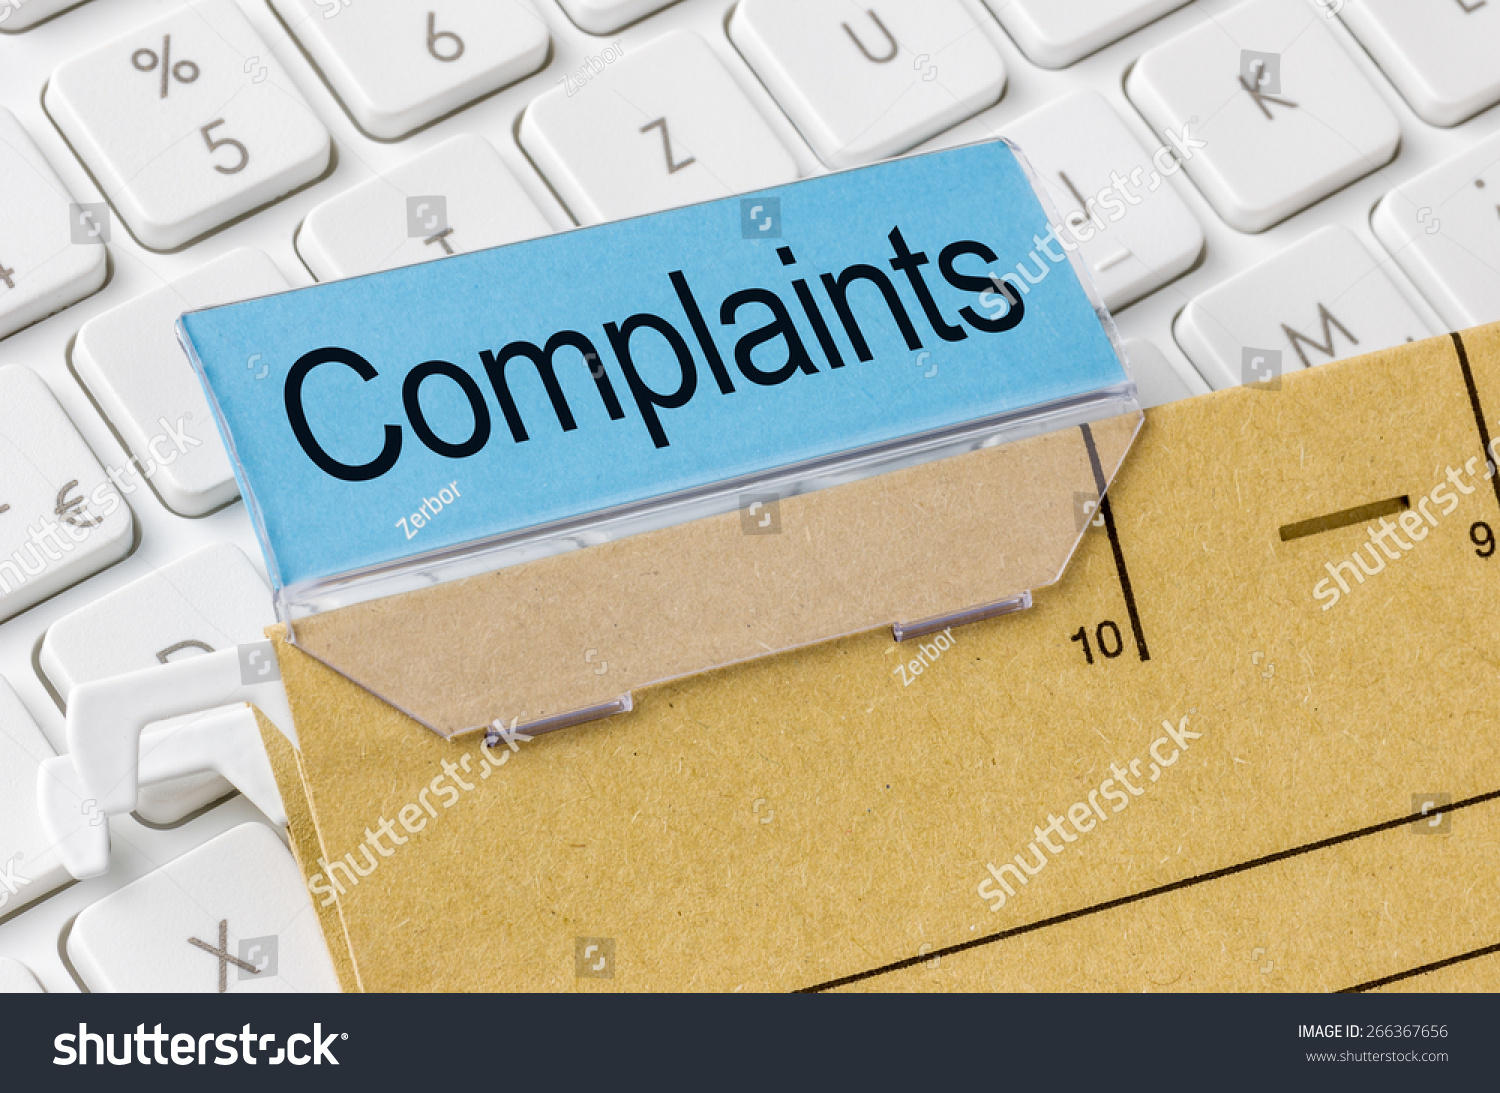 A Brown File Folder Labeled With Complaints Stock Photo 266367656 : Shutterstock